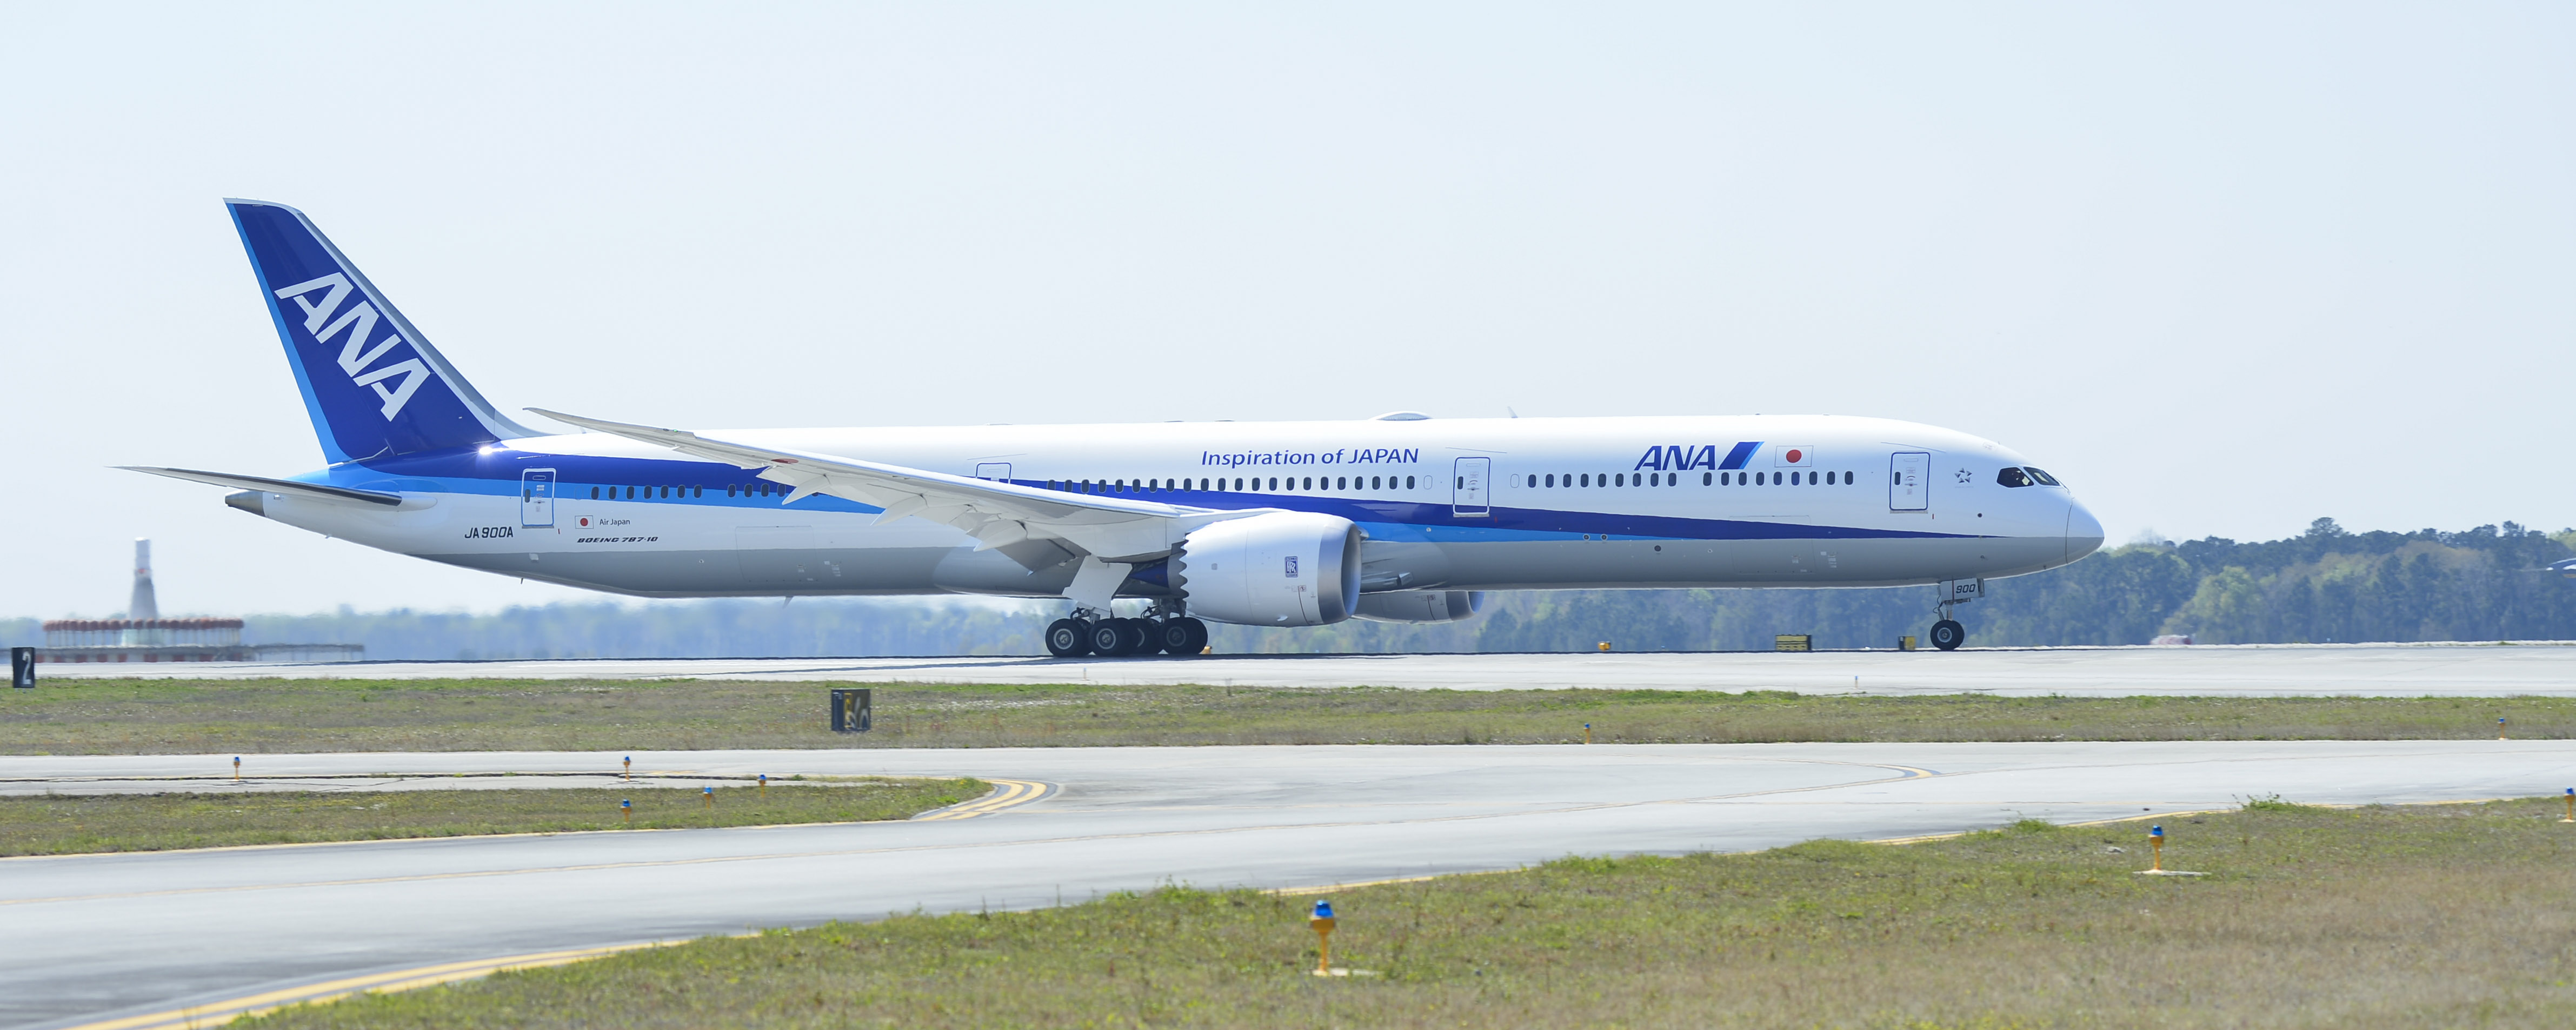 All Nippon Airways Receives First 787-10 Dreamliner | AirlineGeeks com